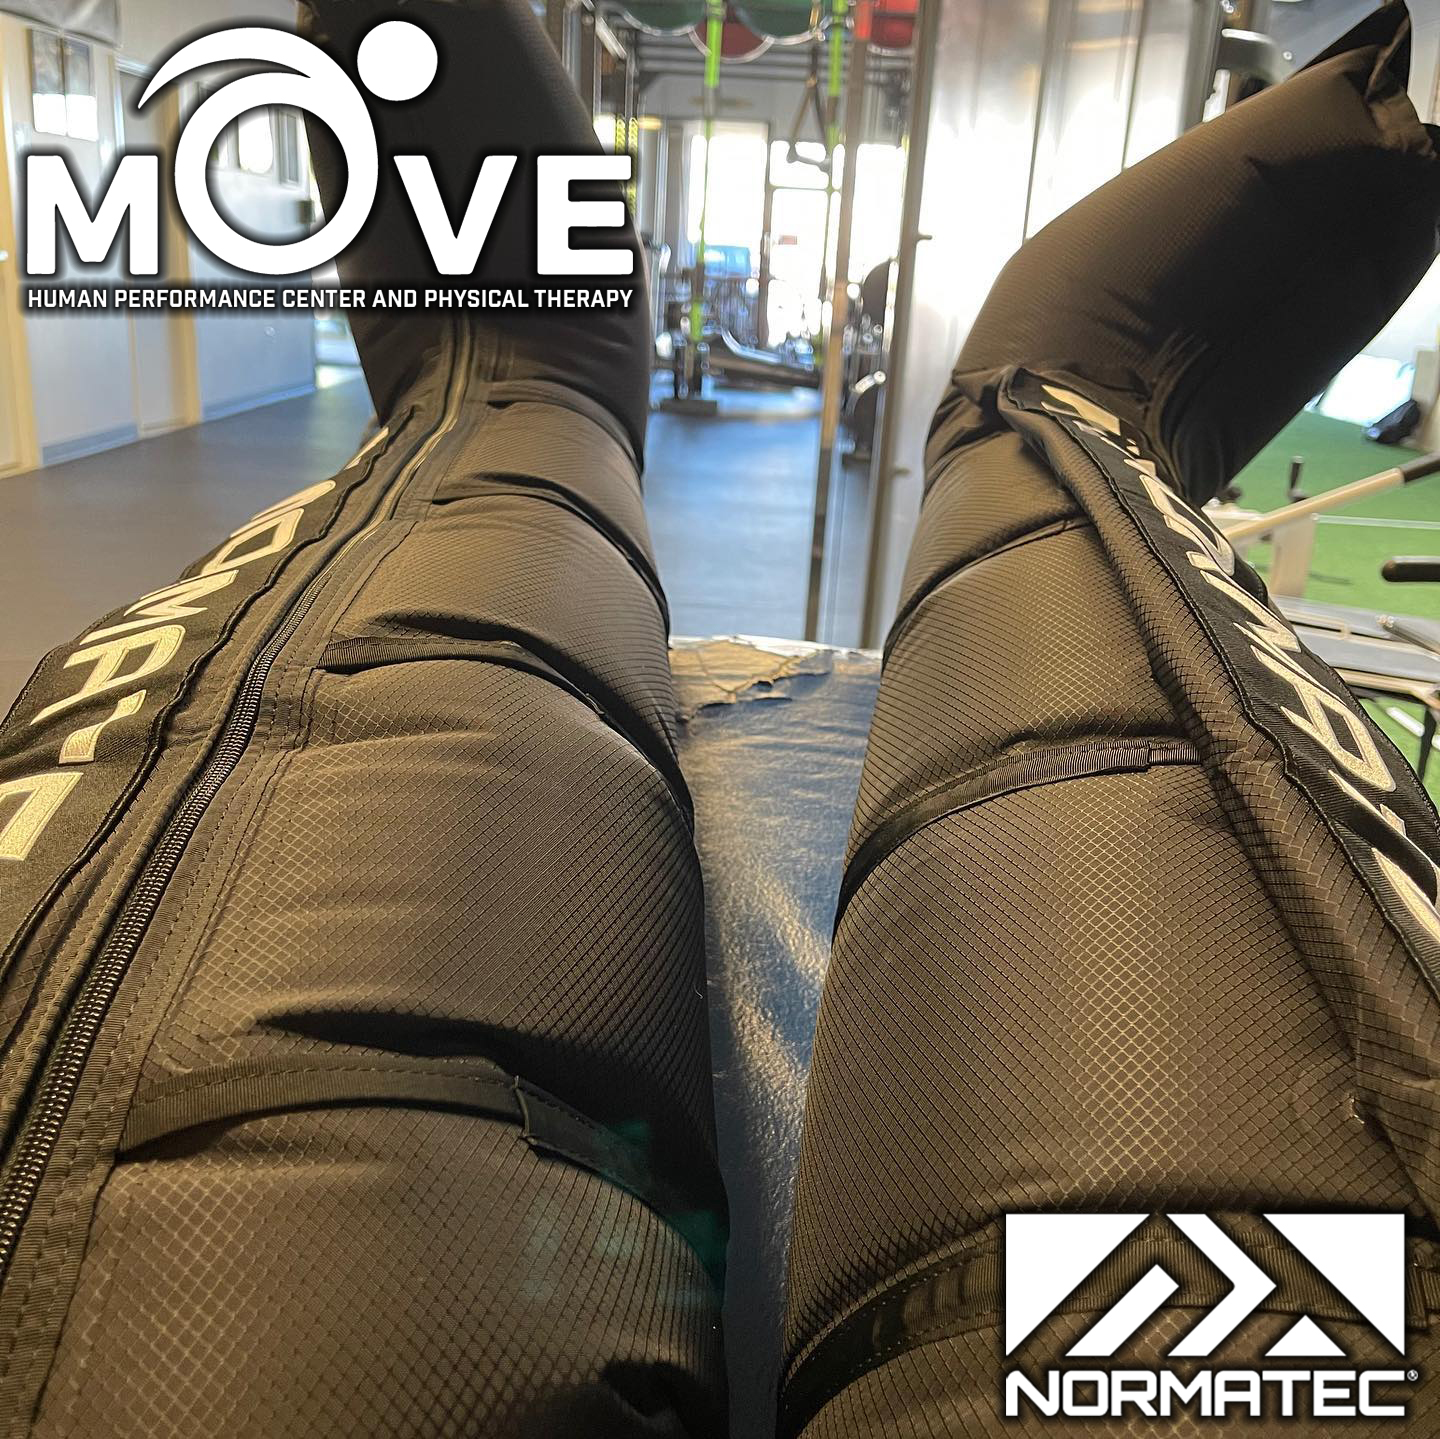 Compression Therapy at Move Physical Therayp